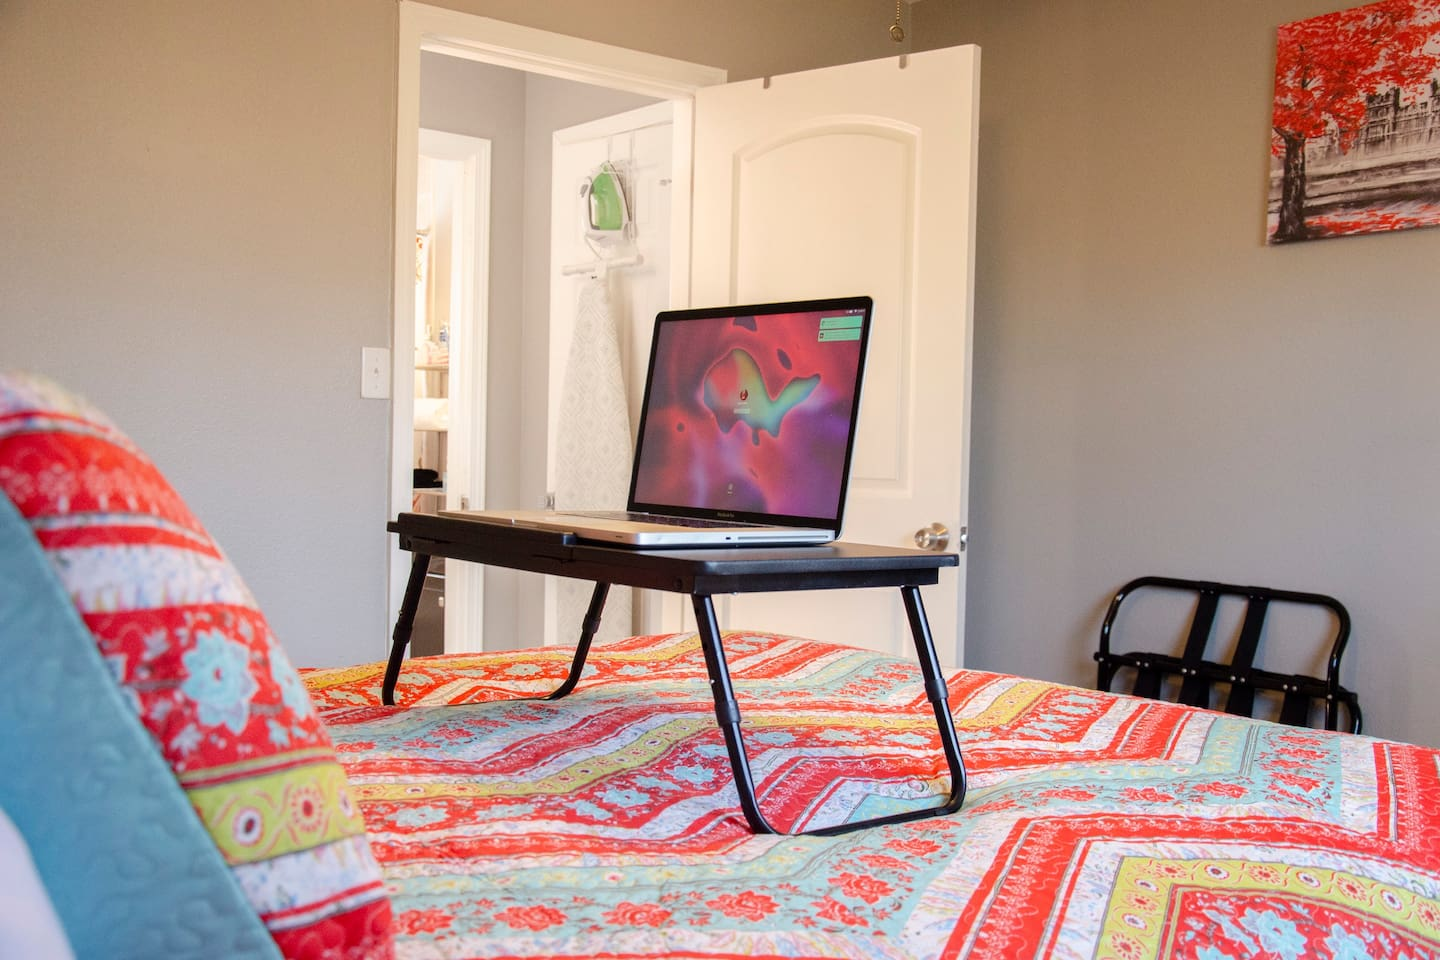 Feel like working from bed? Convenient laptop tray to help make it easy.